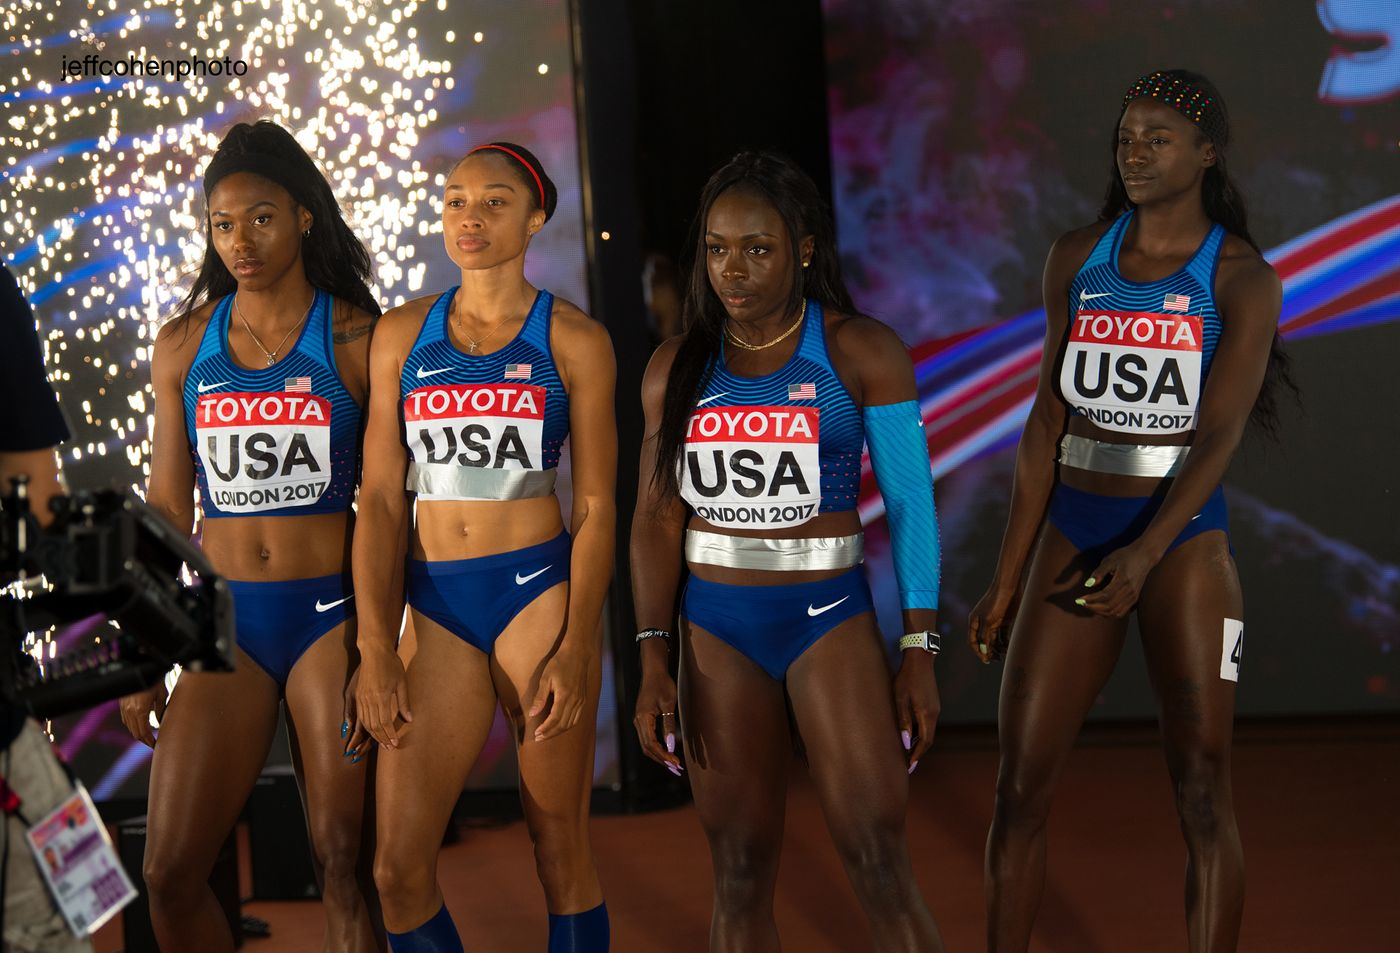 2017-IAAF-WC-London-night-9-usa-4x100w-2386--jeff-cohen-photo--web.jpg